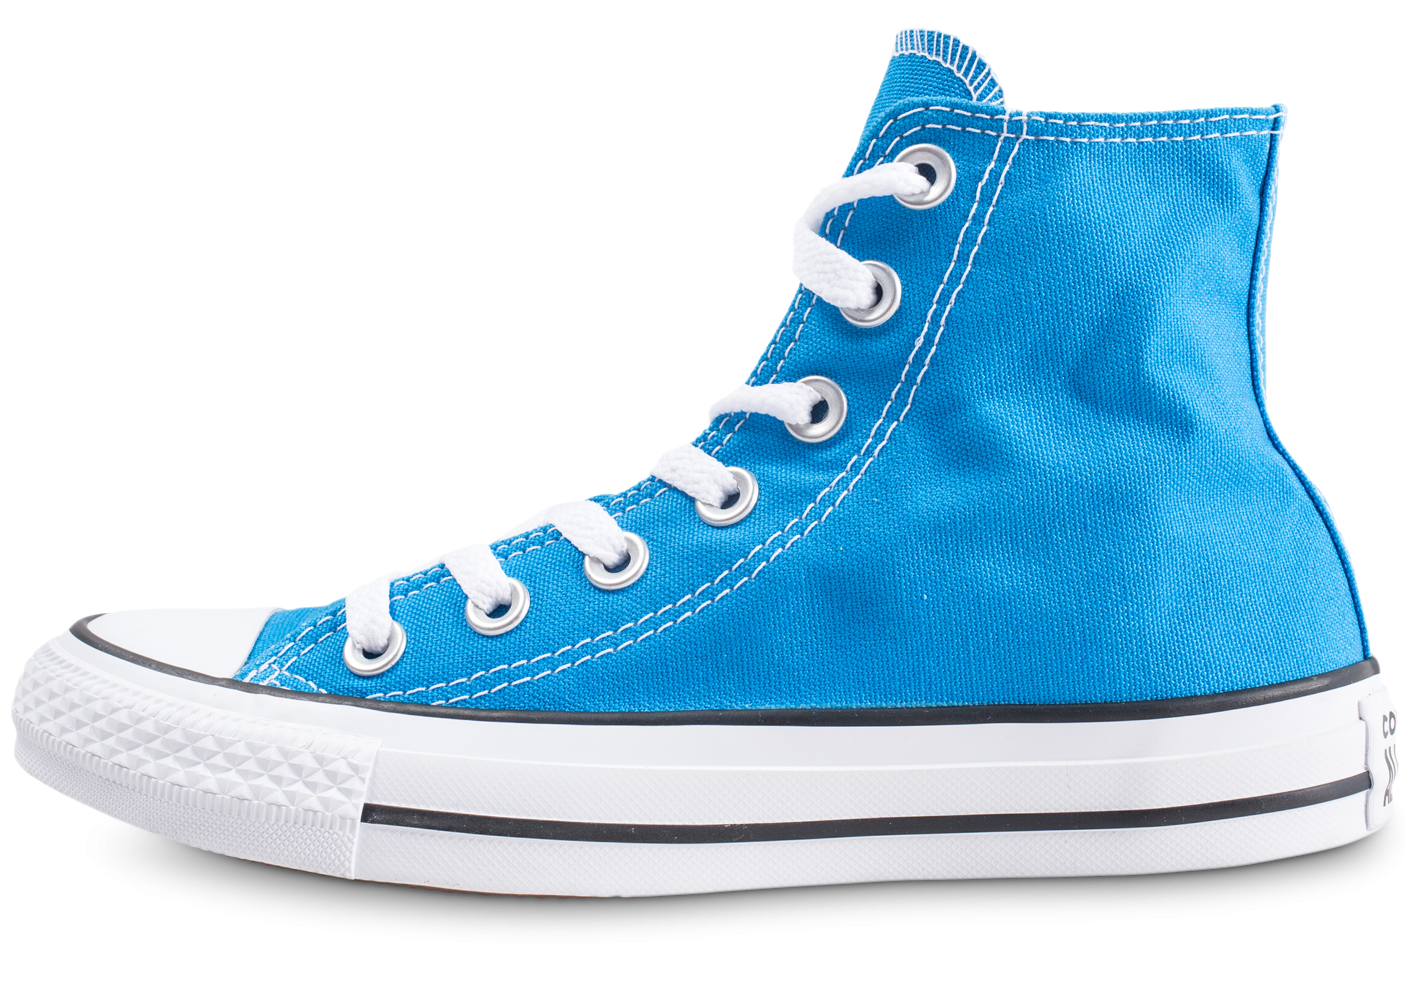 Converse Chuck Taylor All Star Hi bleu clair